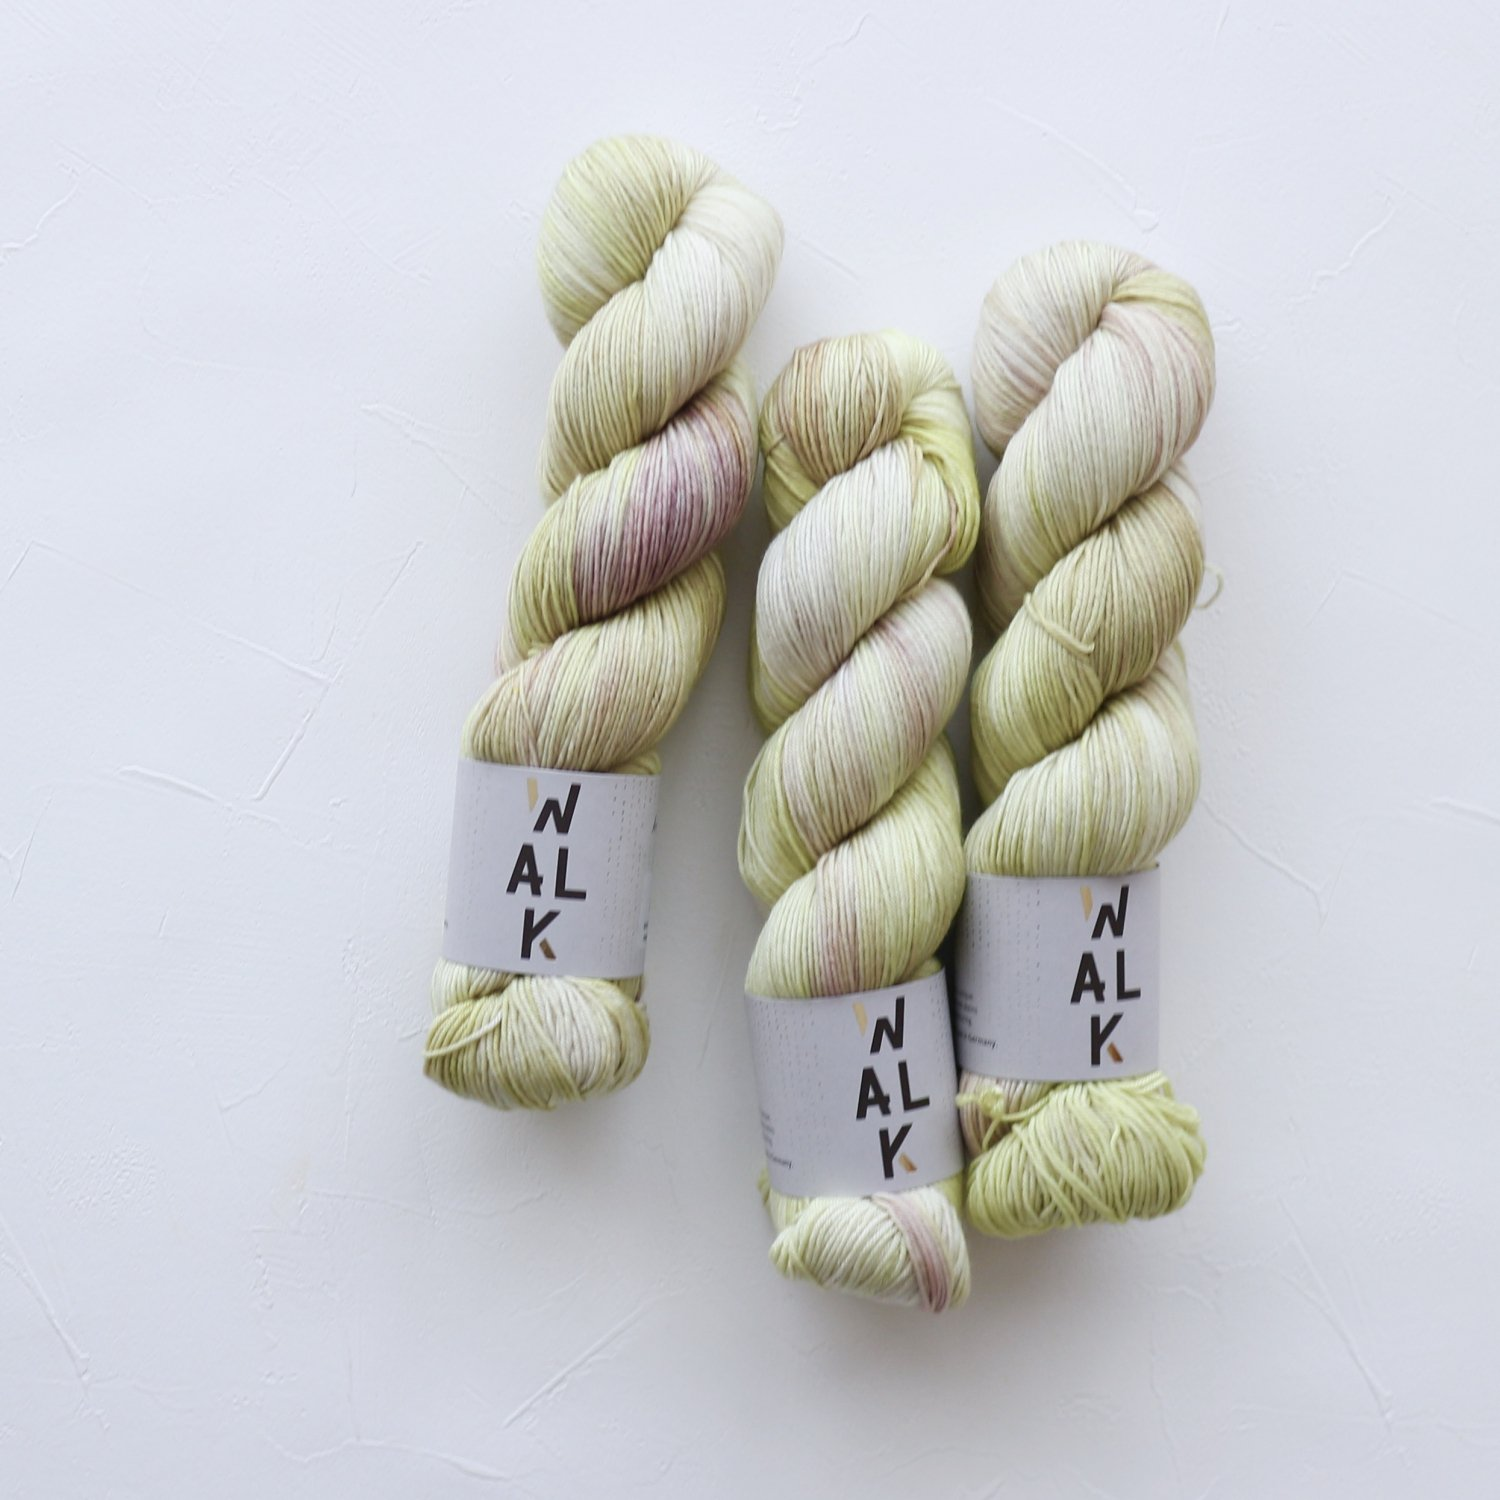 【WalkCollection】<br>Pure Sock<br>Artichoke Hearts